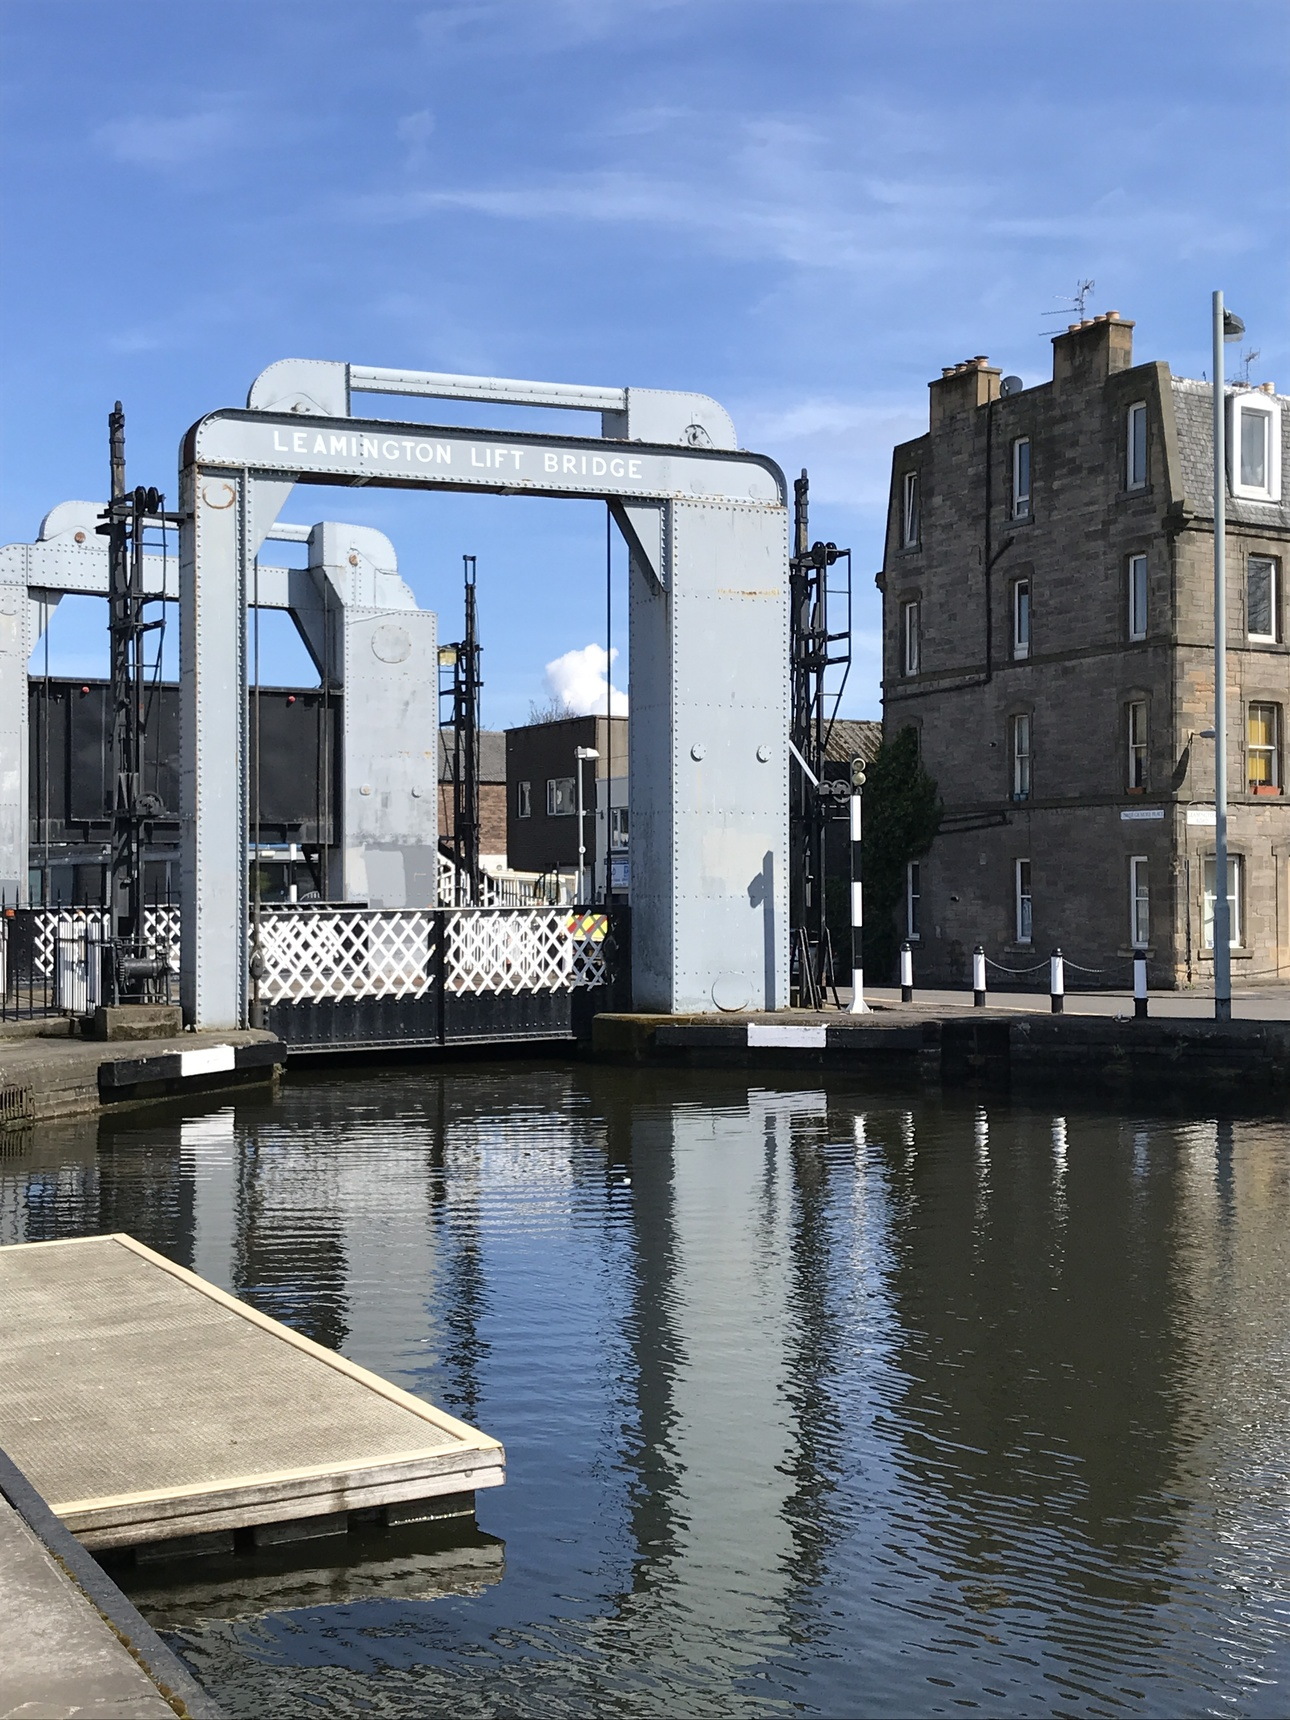 Leamington Lift Bridge, Union Canal, Lochrin Basin